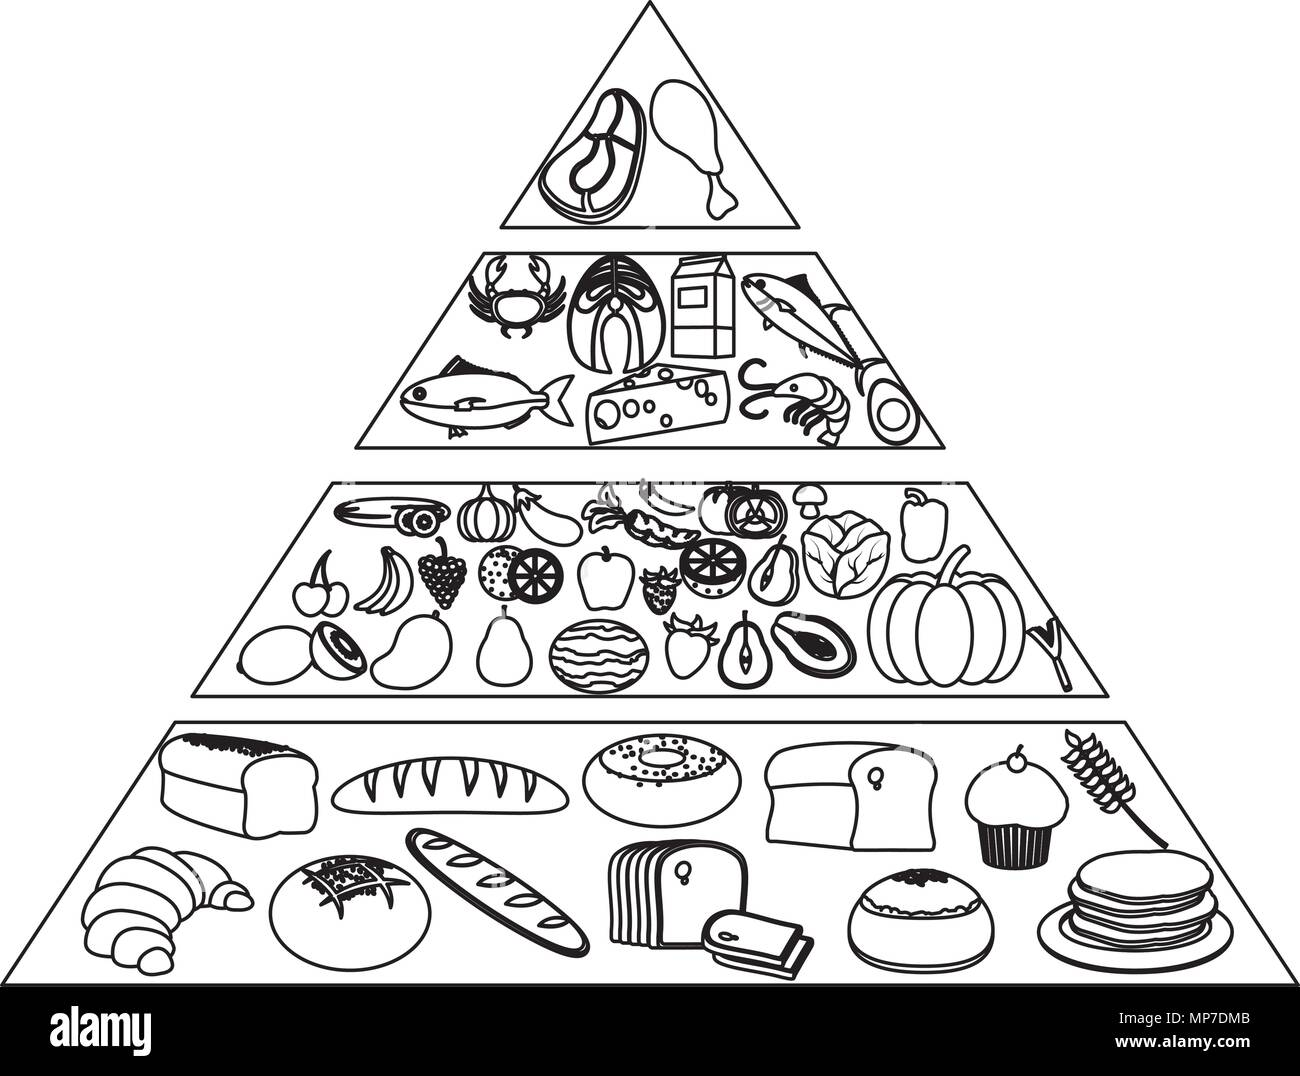 Line Nutritional Food Pyramidt Products Stock Vector